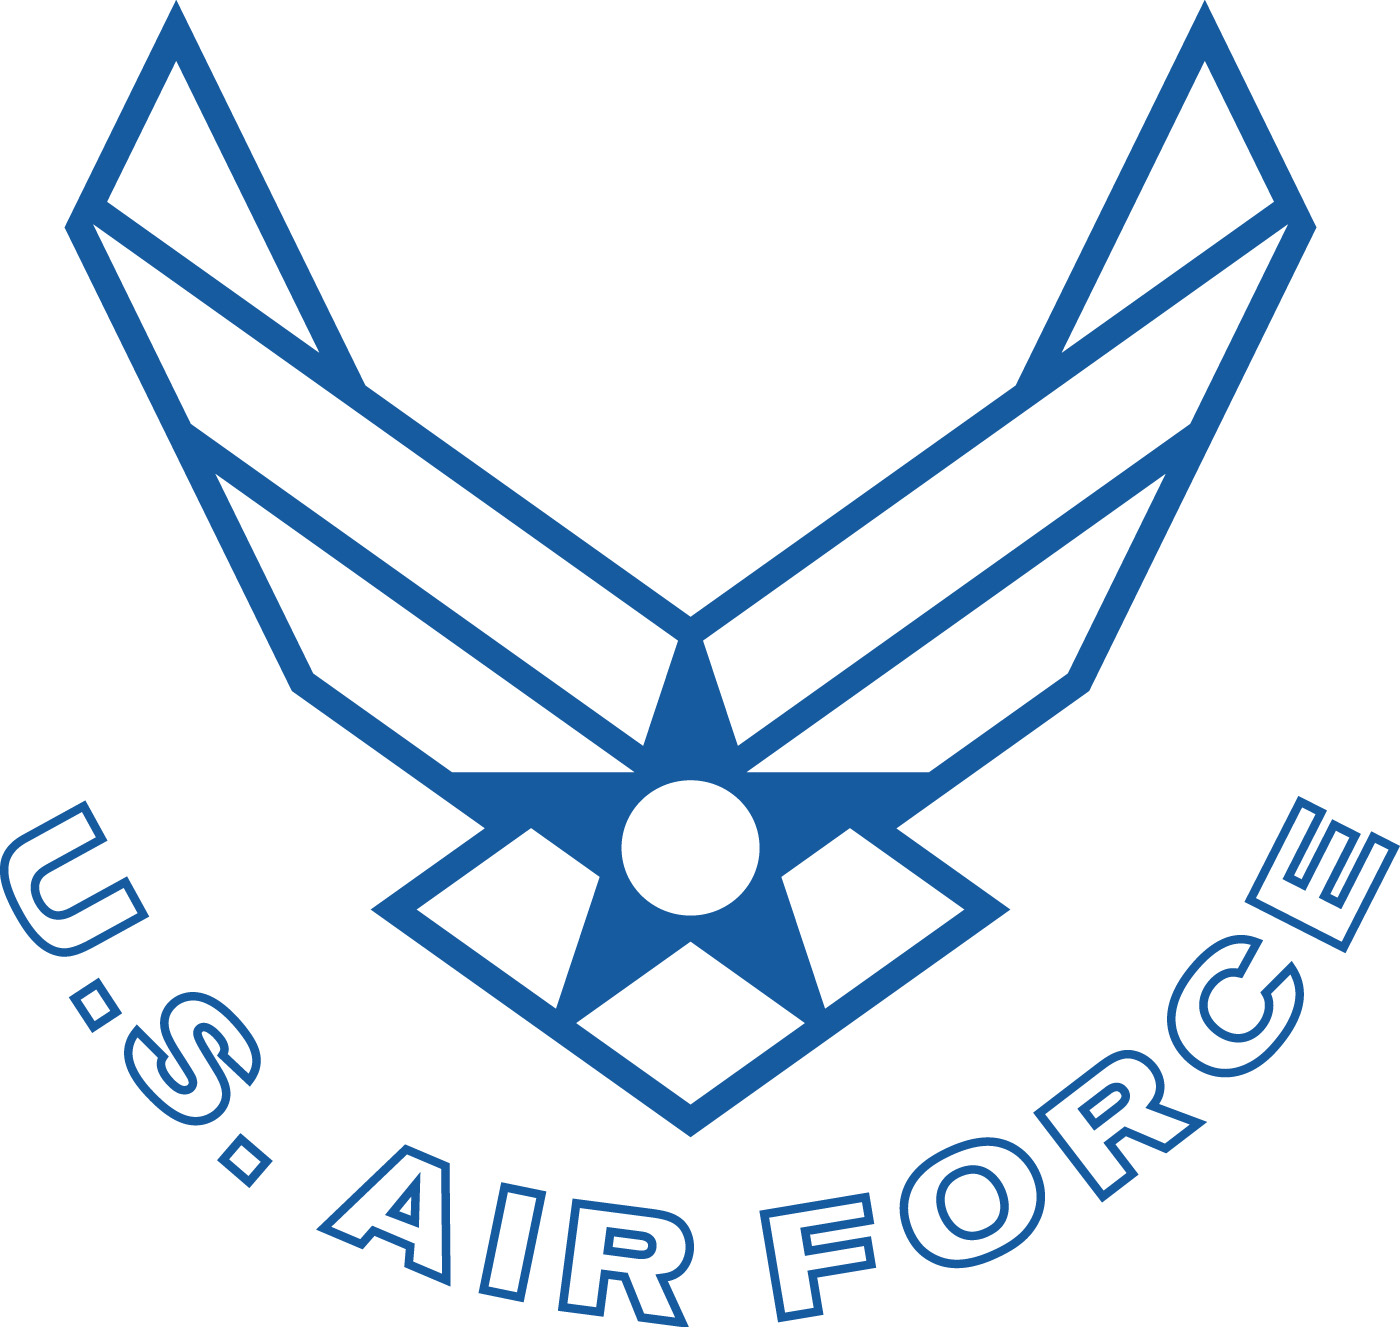 Art air force symbol curved text white with blue outline the air force symbol buycottarizona Images